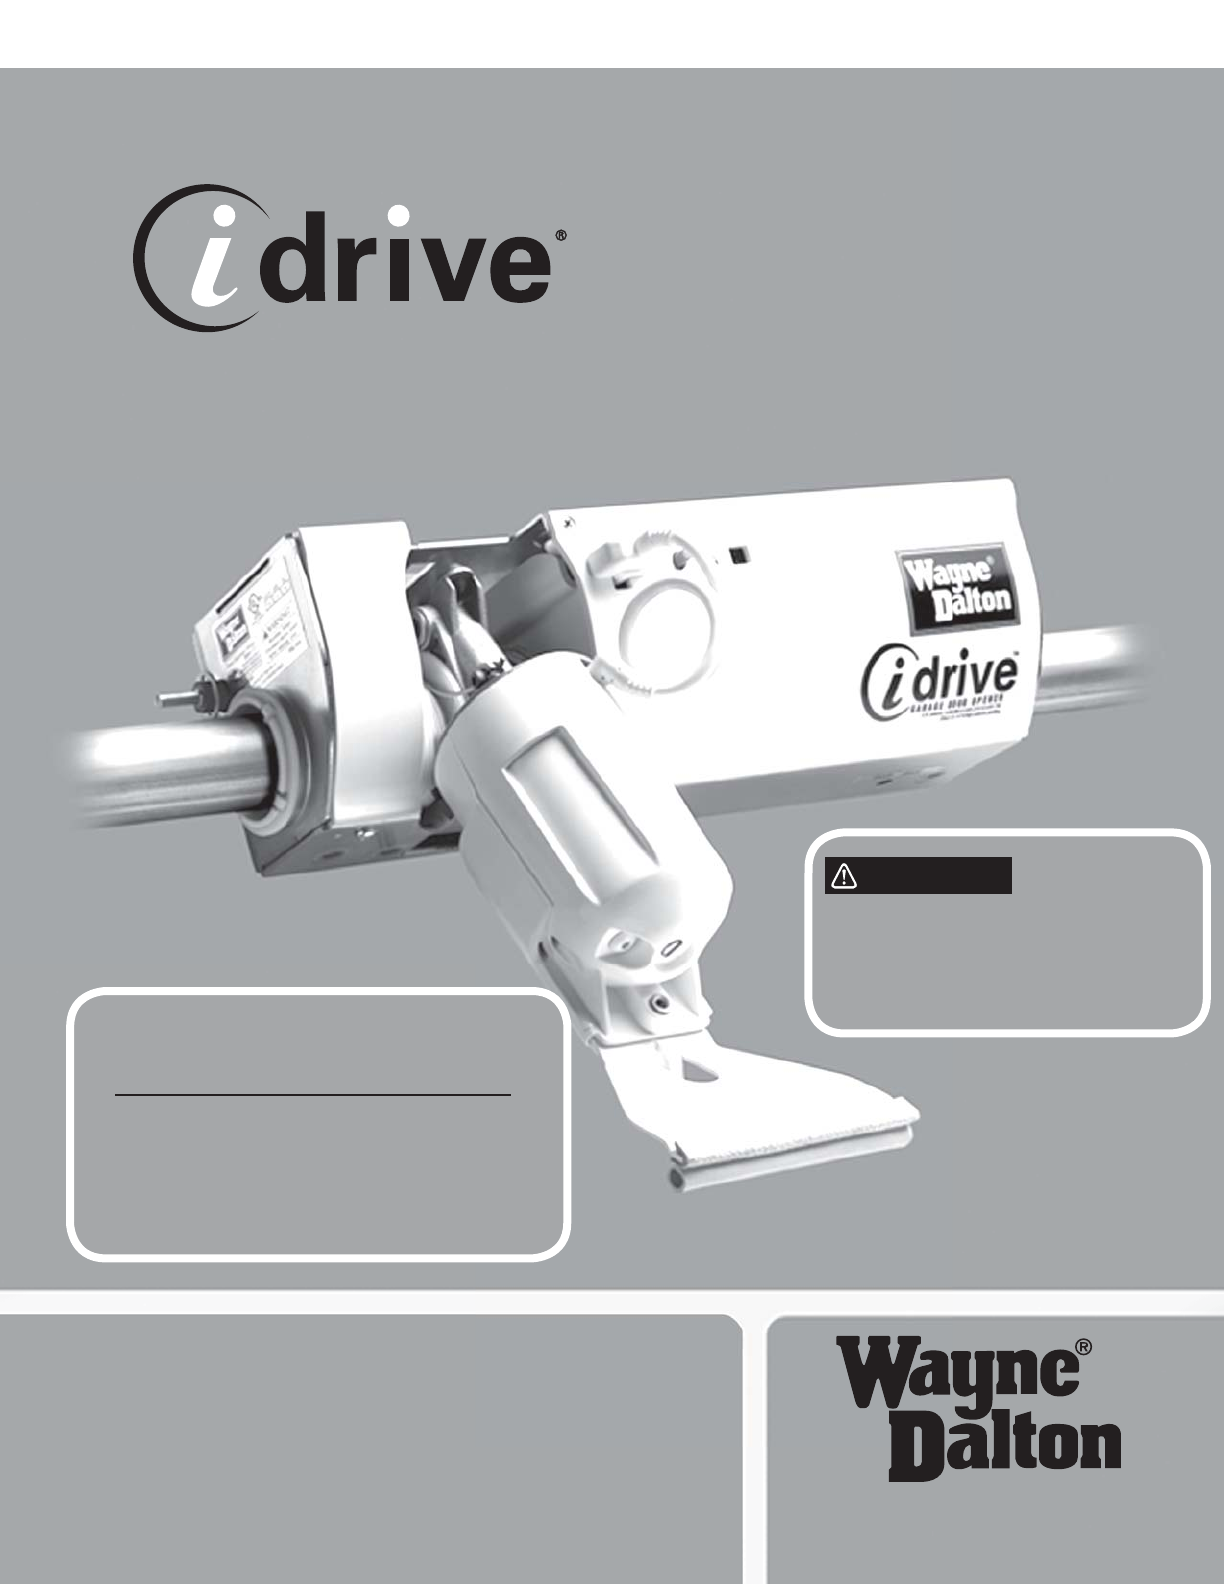 Wayne dalton garage door opener 3663 372 user guide wayne dalton garage door opener 3663 372 user guide manualsonline rubansaba